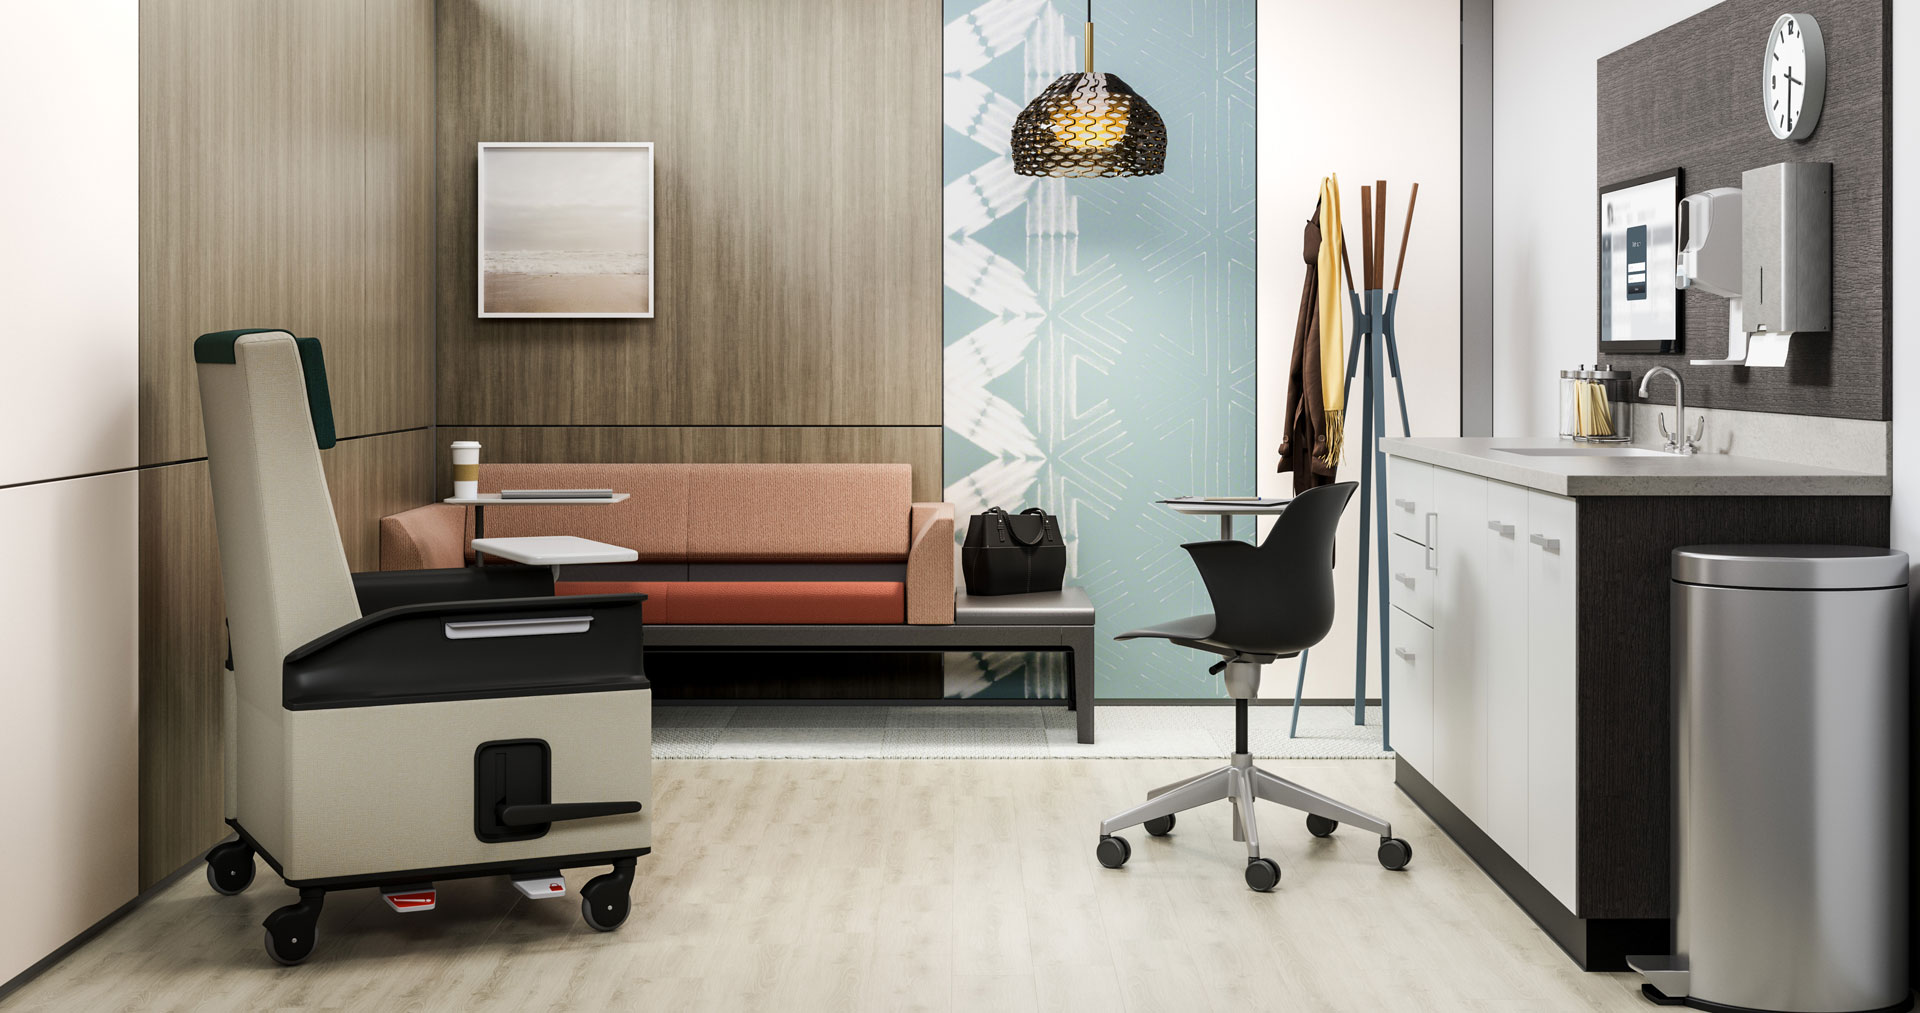 NBS_Steelcase_healthcare_18-0106638.1920